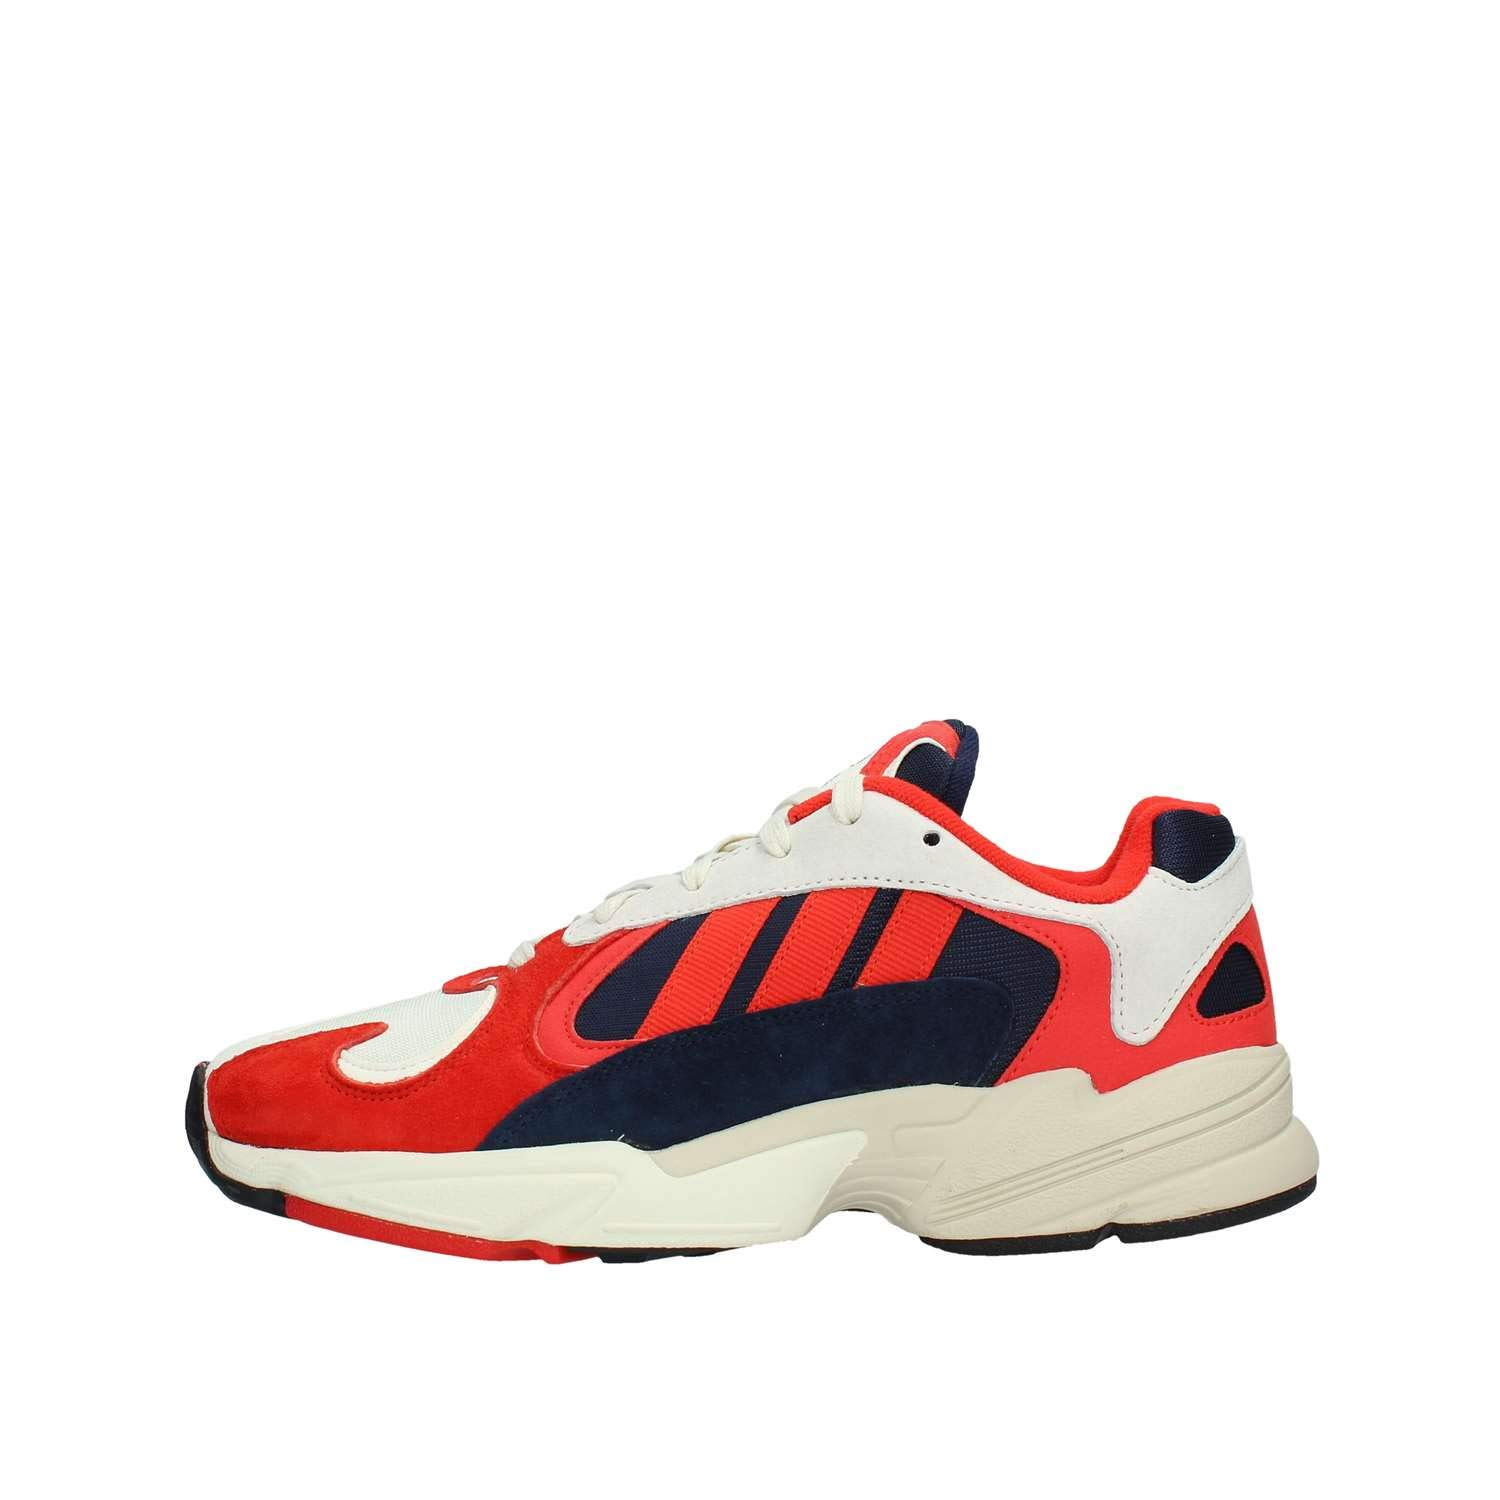 azul fashionable voltio adidas yung 1 most fashionable azul outlet 99595 d8a6d 0bac1d